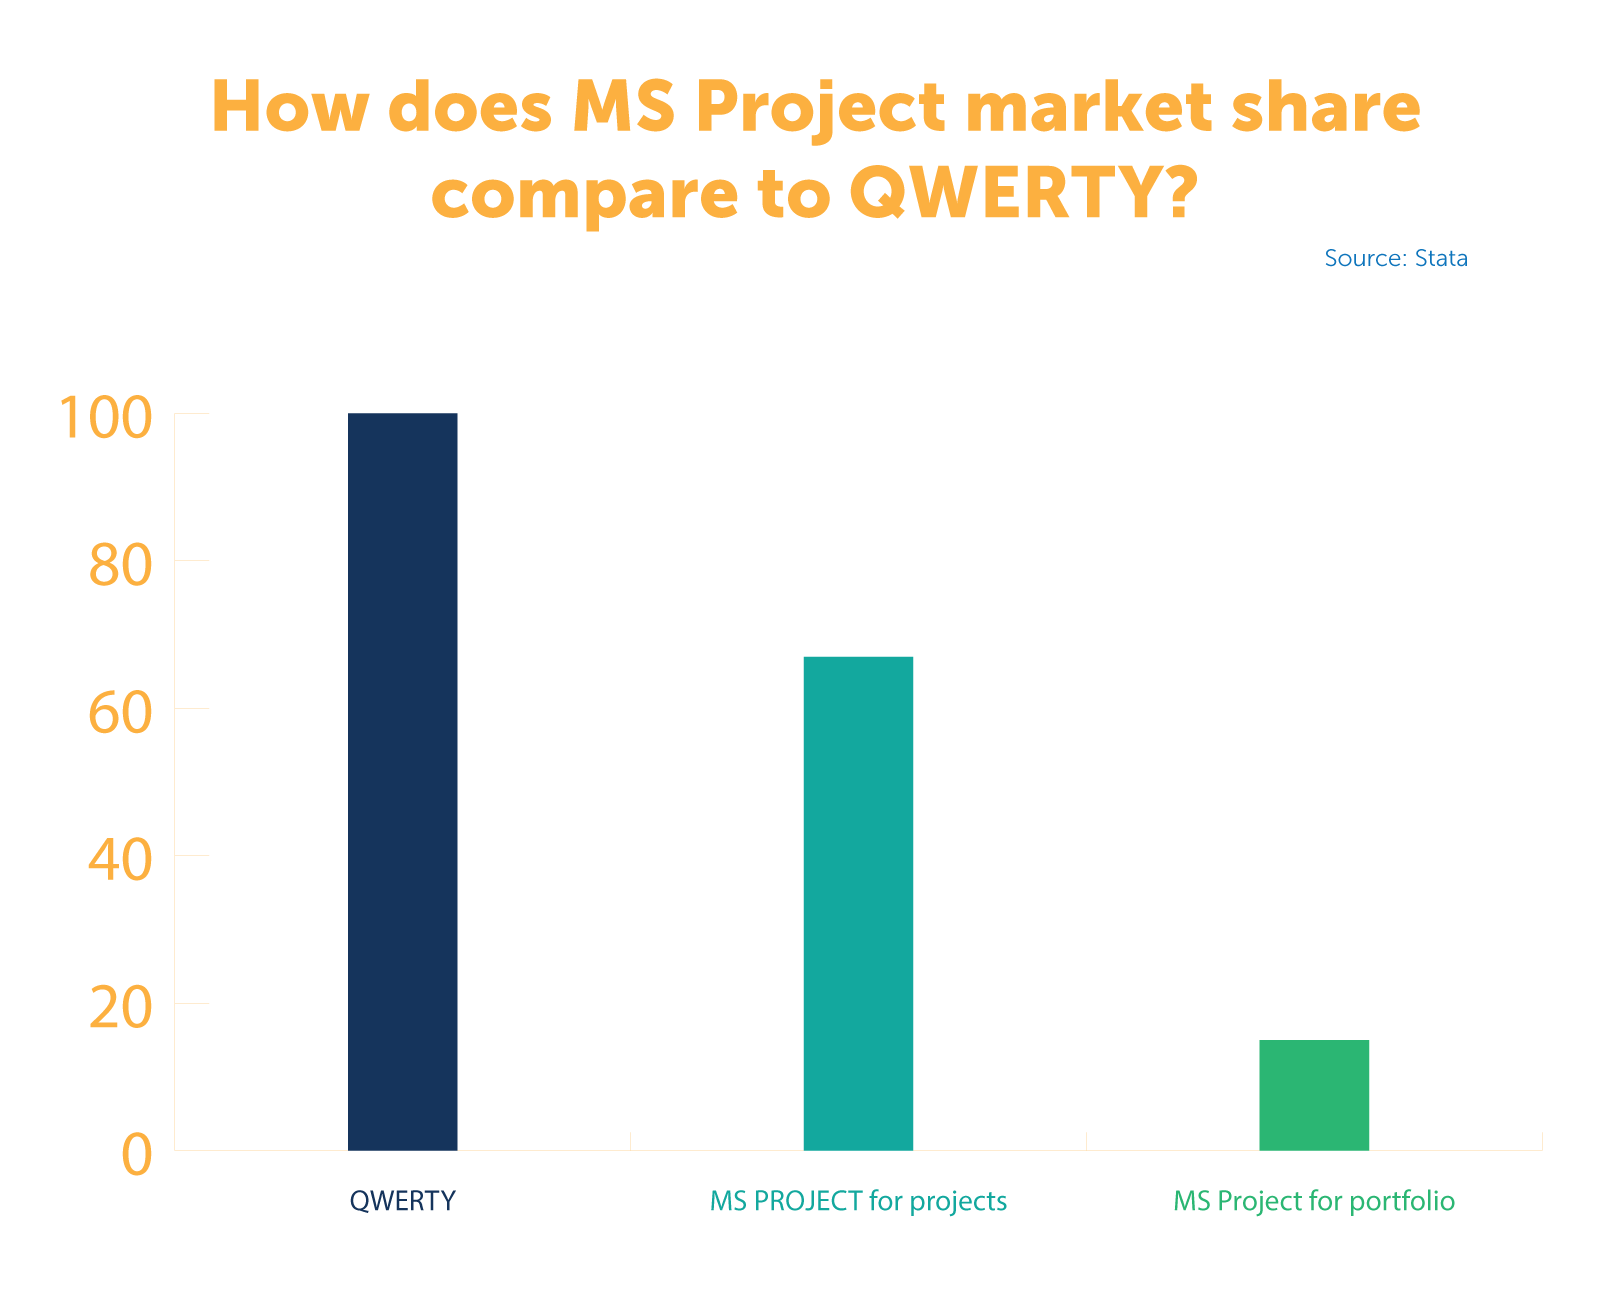 How does MS Project market share compare to QWERTY? Data